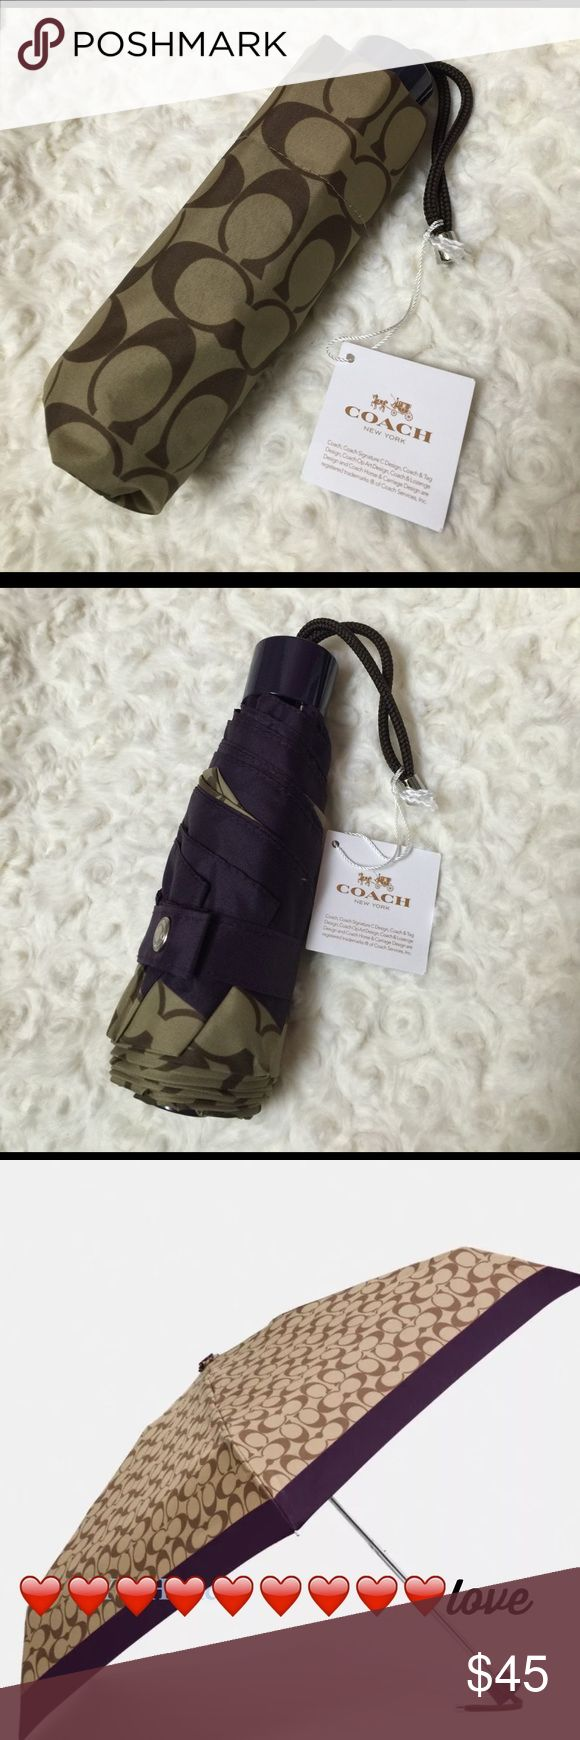 Coach Signature Mini Umbrella You need this! Fits in you purse, briefcase, suitcase - perfect colors for boy men and women. New with tags. Ships with Coach gift box. $65 Coach Accessories Umbrellas